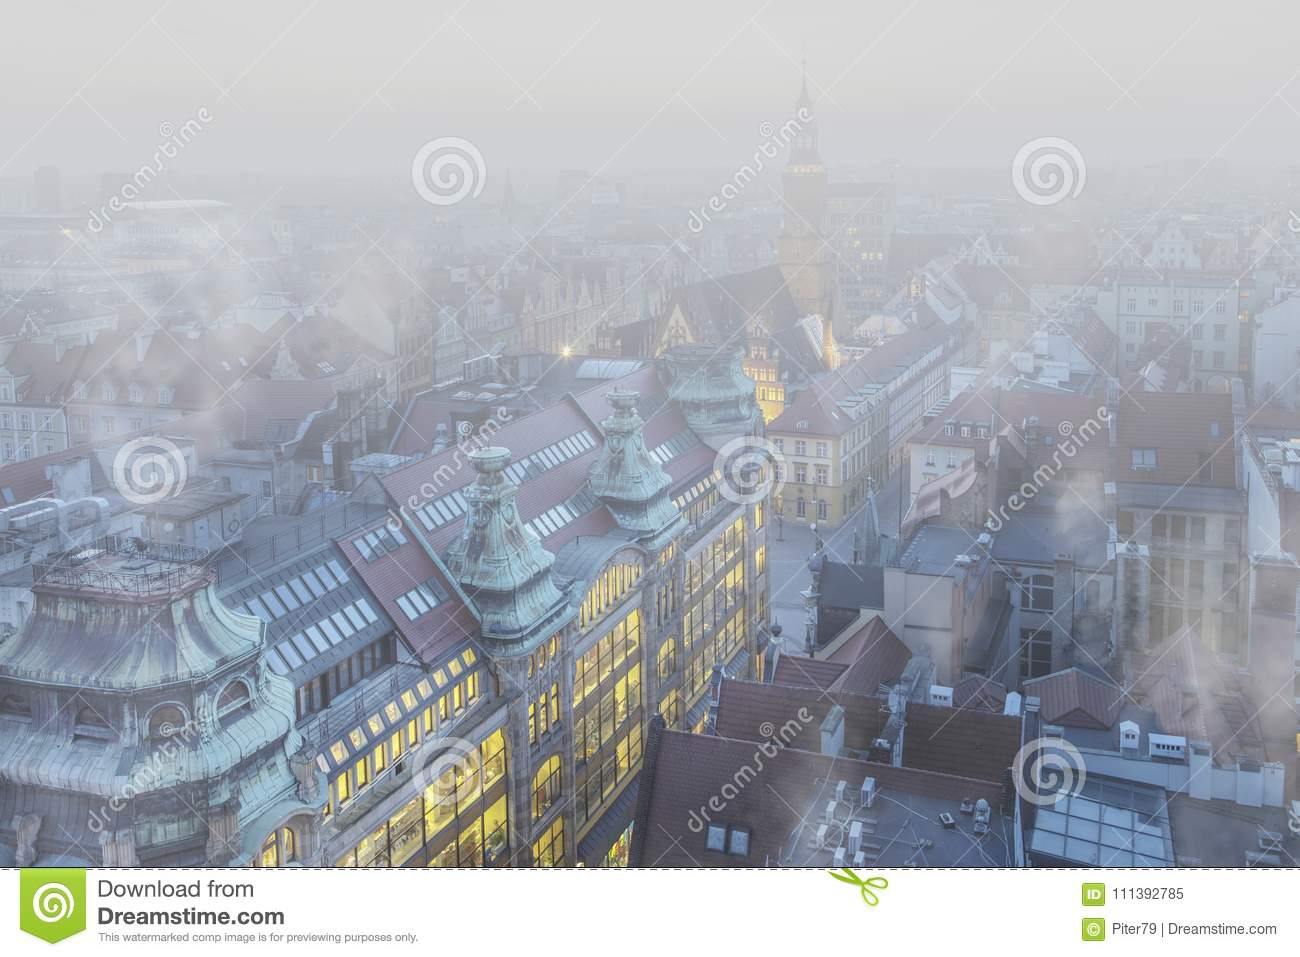 Smog over the city of Wrocław, Poland. Winter view of the city skyline